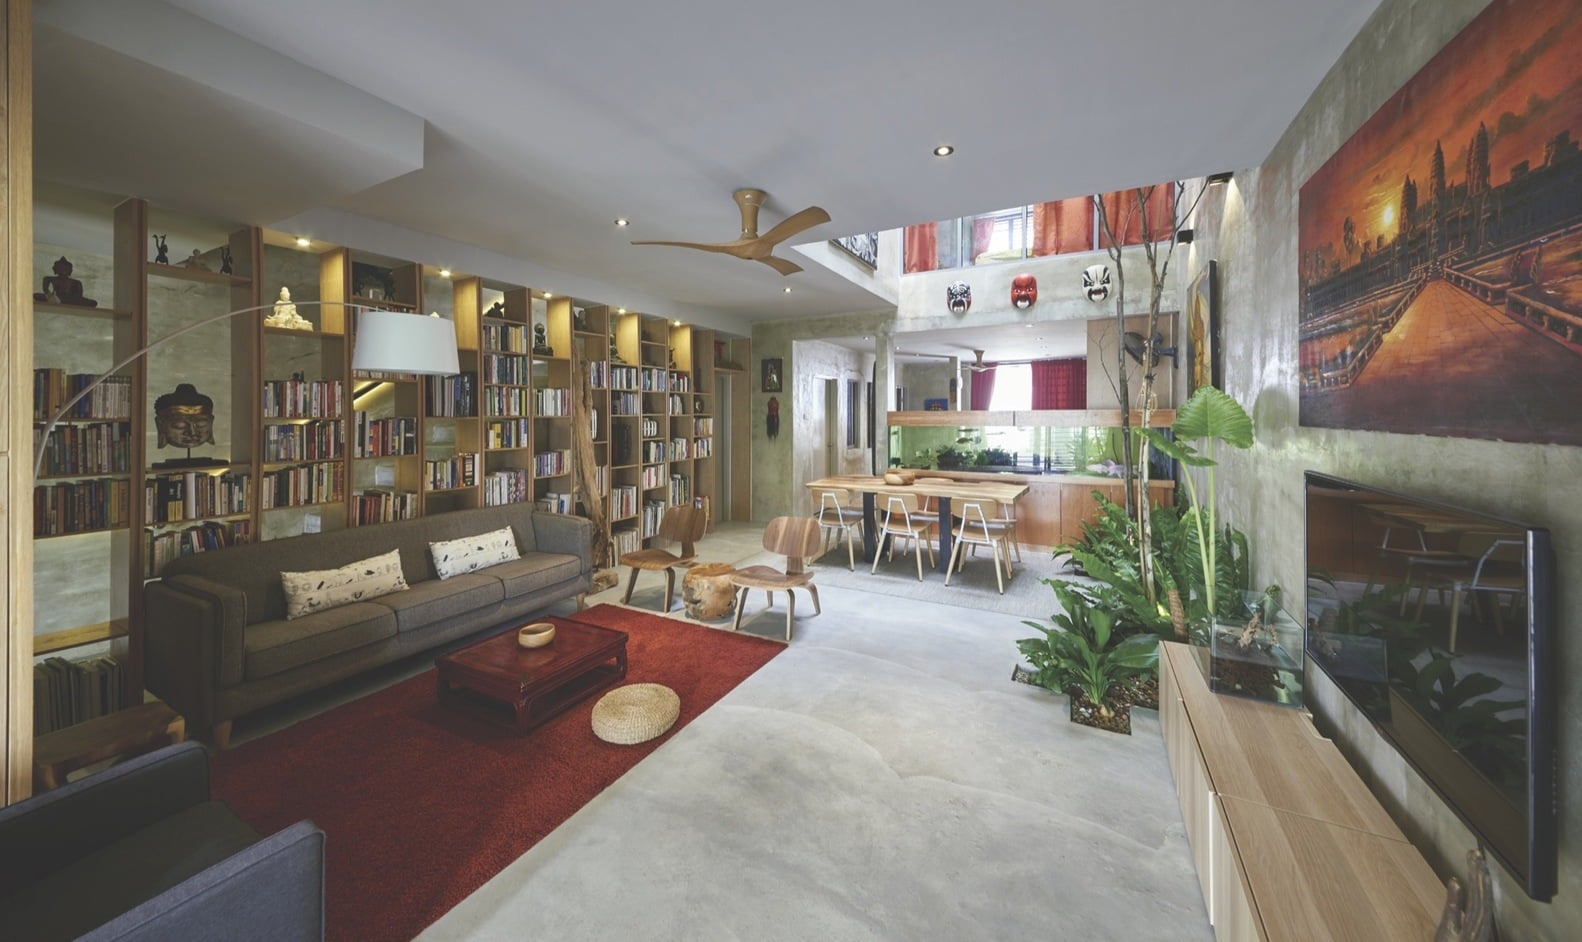 Living room view of an terrace house indoor courtyard.